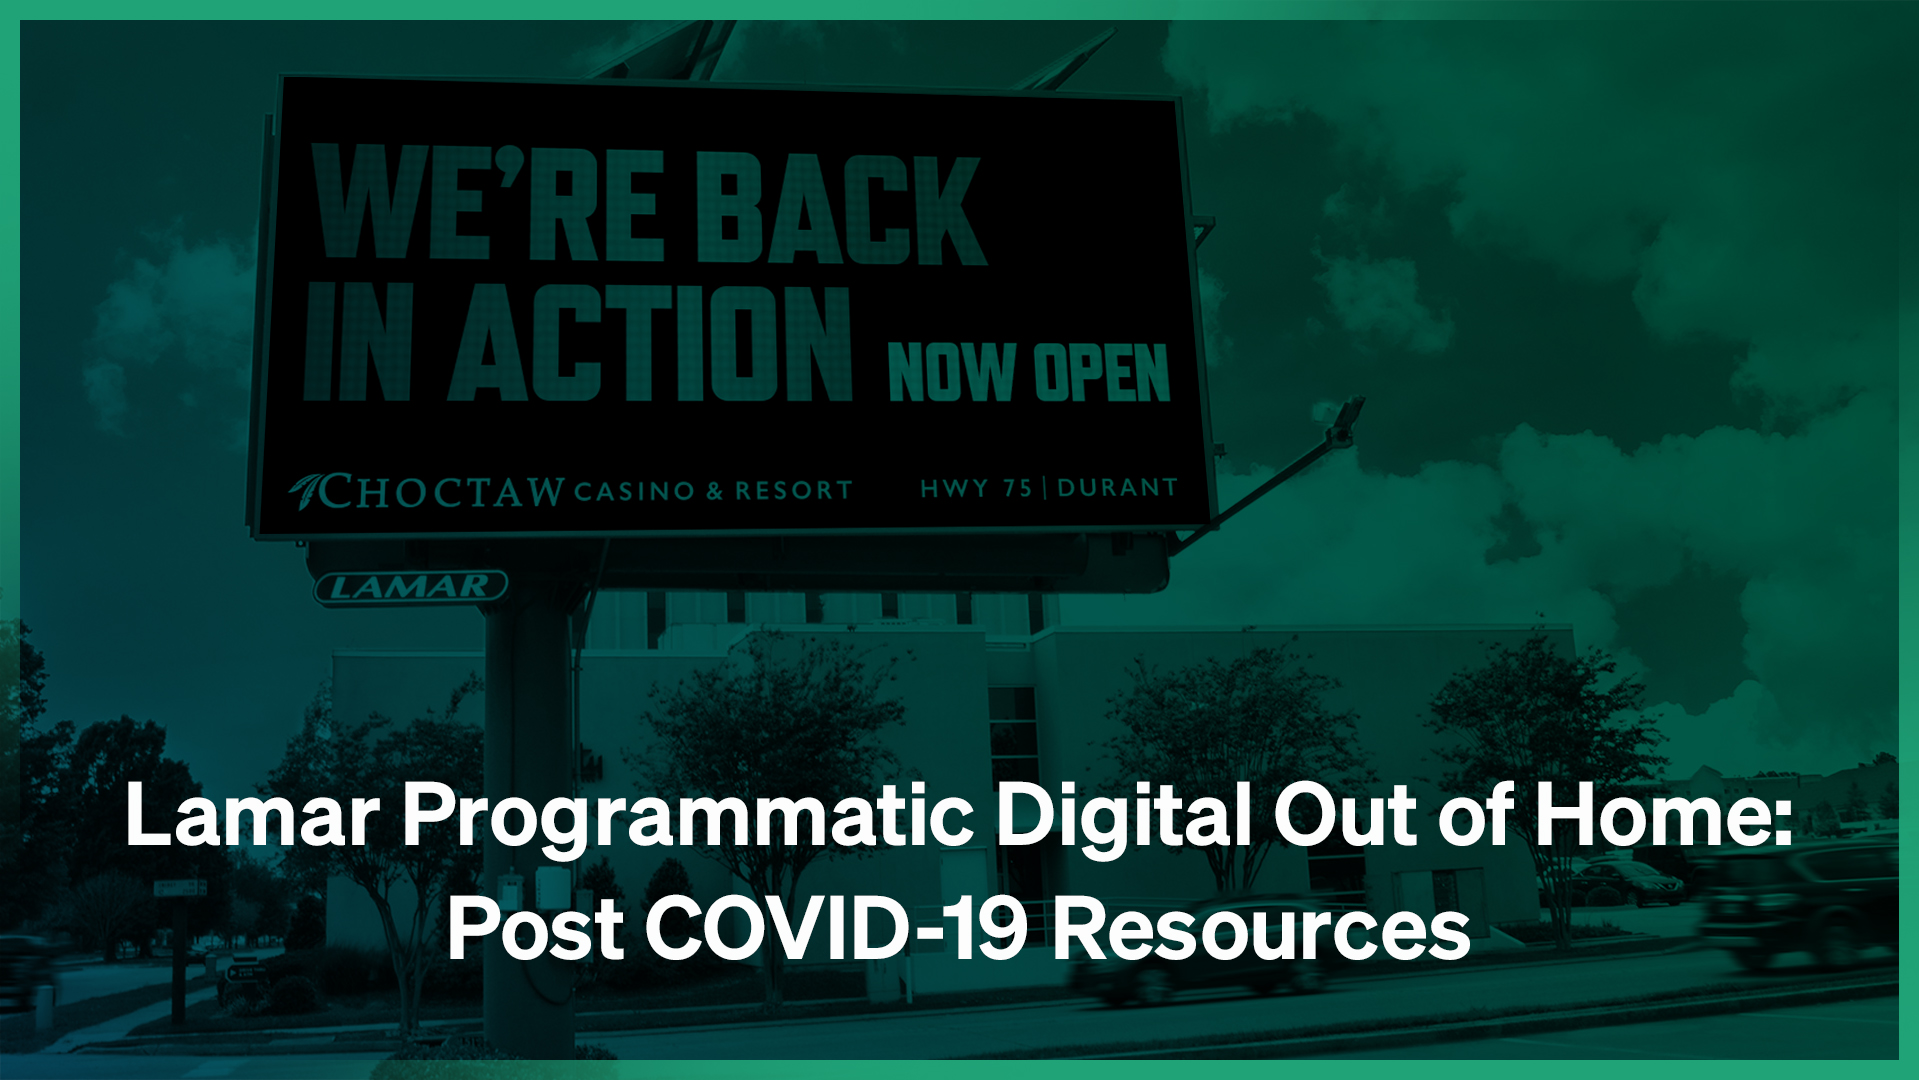 Lamar Programmatic Digital Out of Home: Post COVID-19 Resources